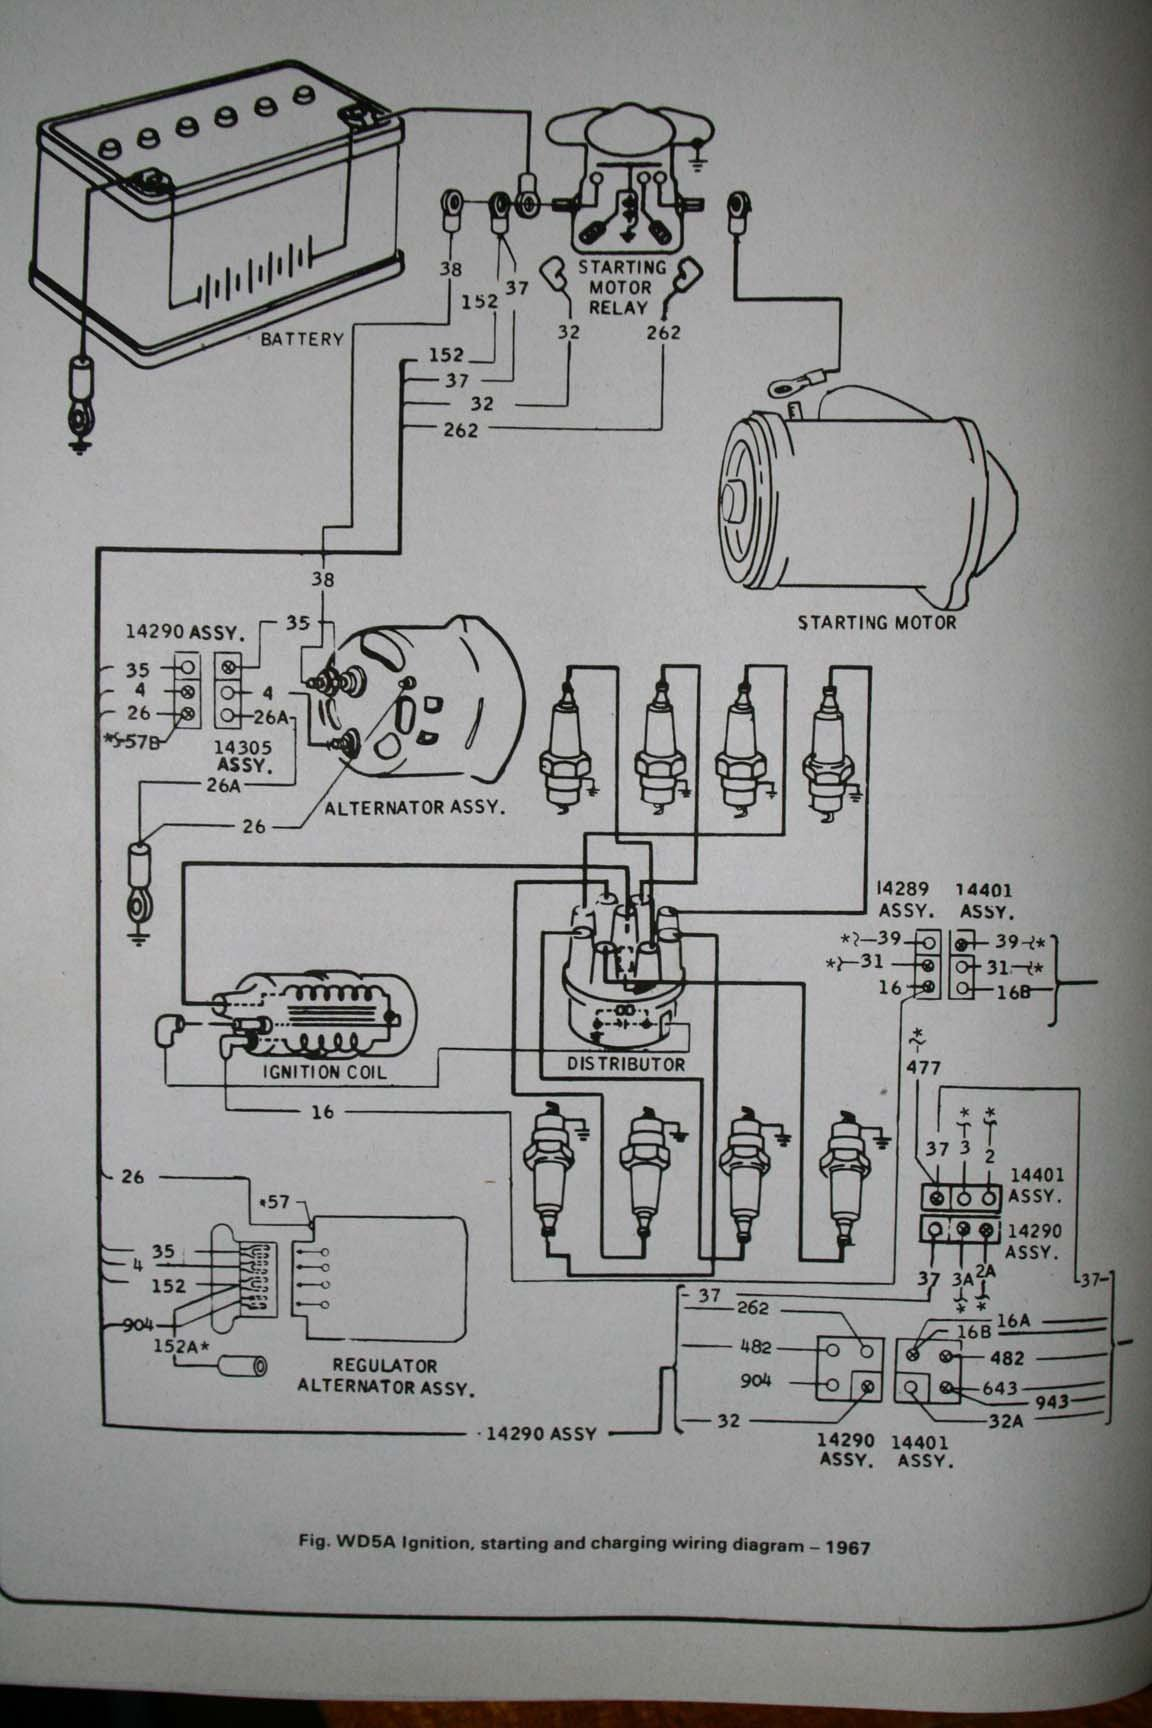 161544d1344372414 voltage regulator alt wiring 67 coupe have wire im not sure what do 1967 starting charging diagram voltage regulator alt wiring on 67 coupe, have a wire i'm not sure 67 mustang wiring diagram at alyssarenee.co